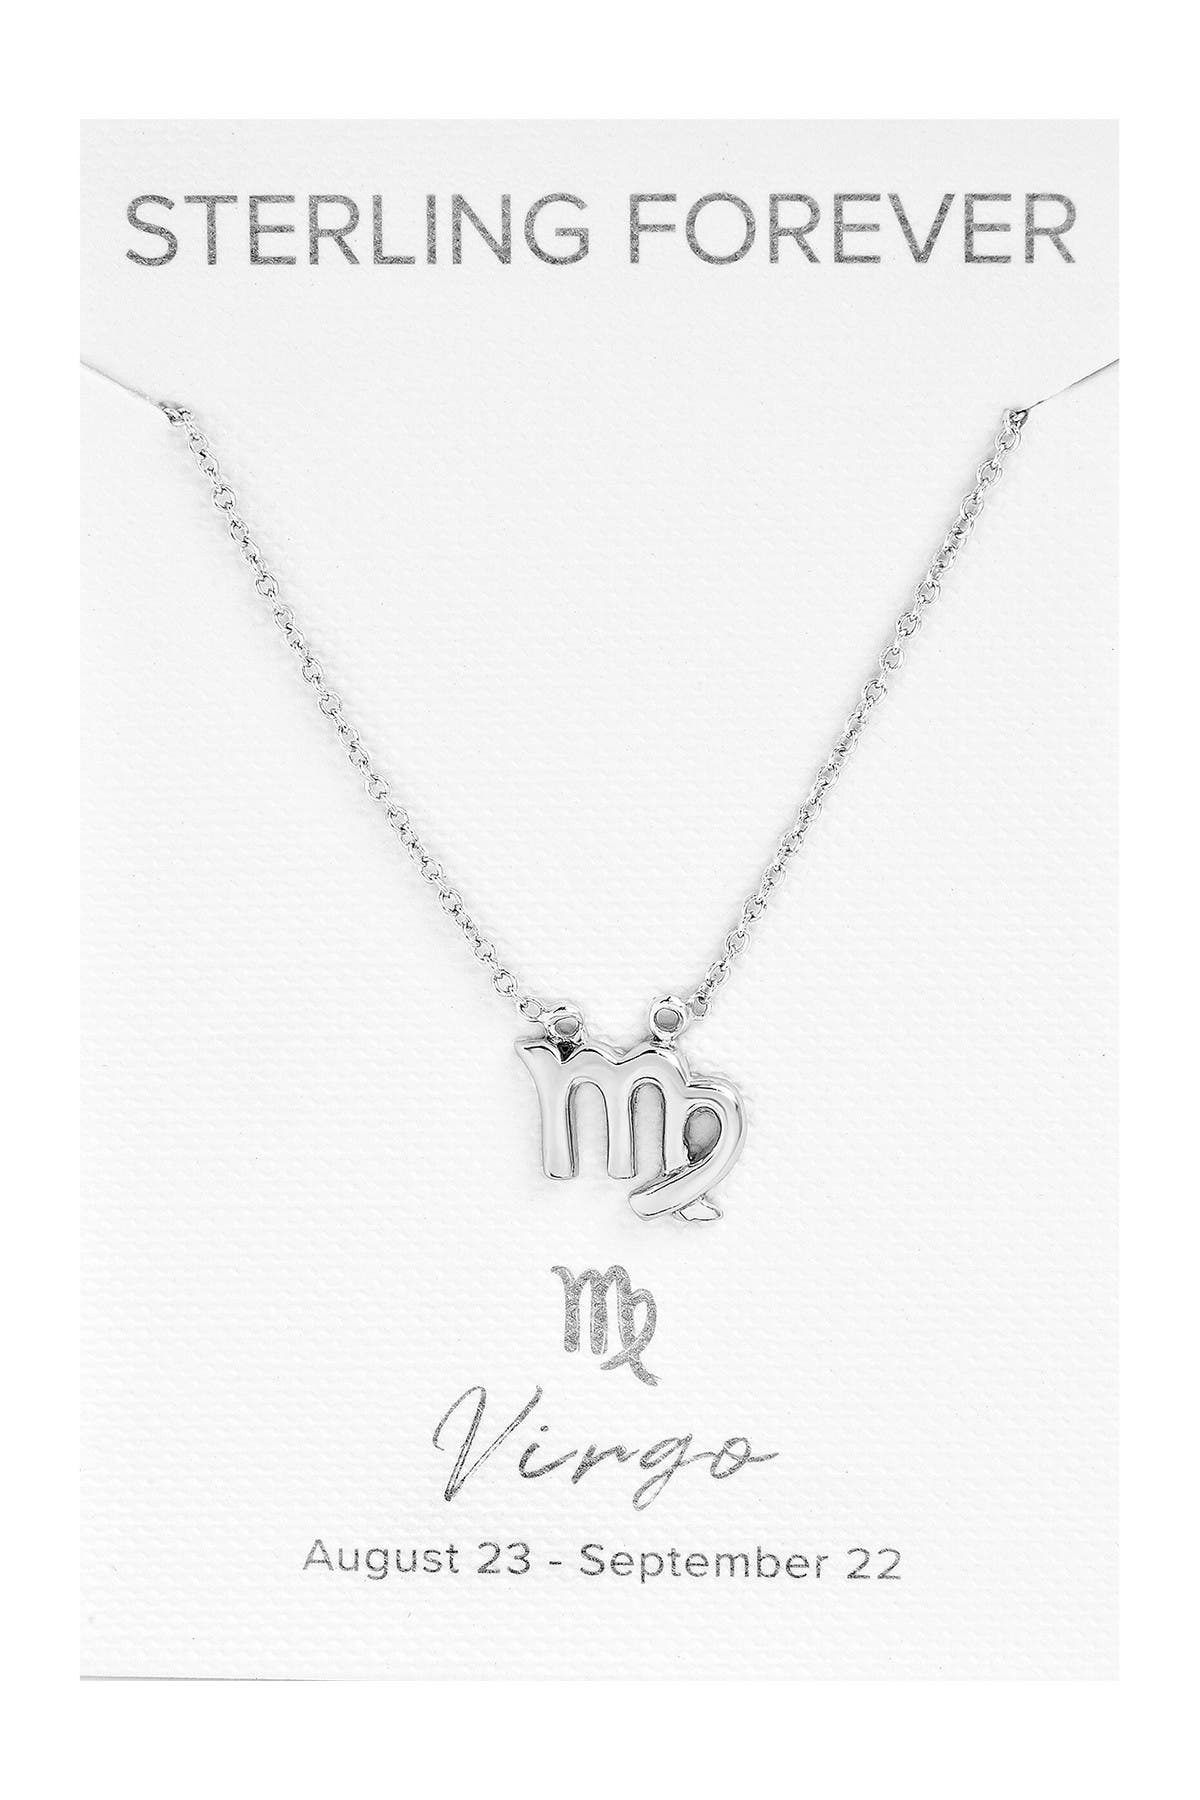 Sterling Forever Rhodium Plated Zodiac Pendant Necklace - Virgo